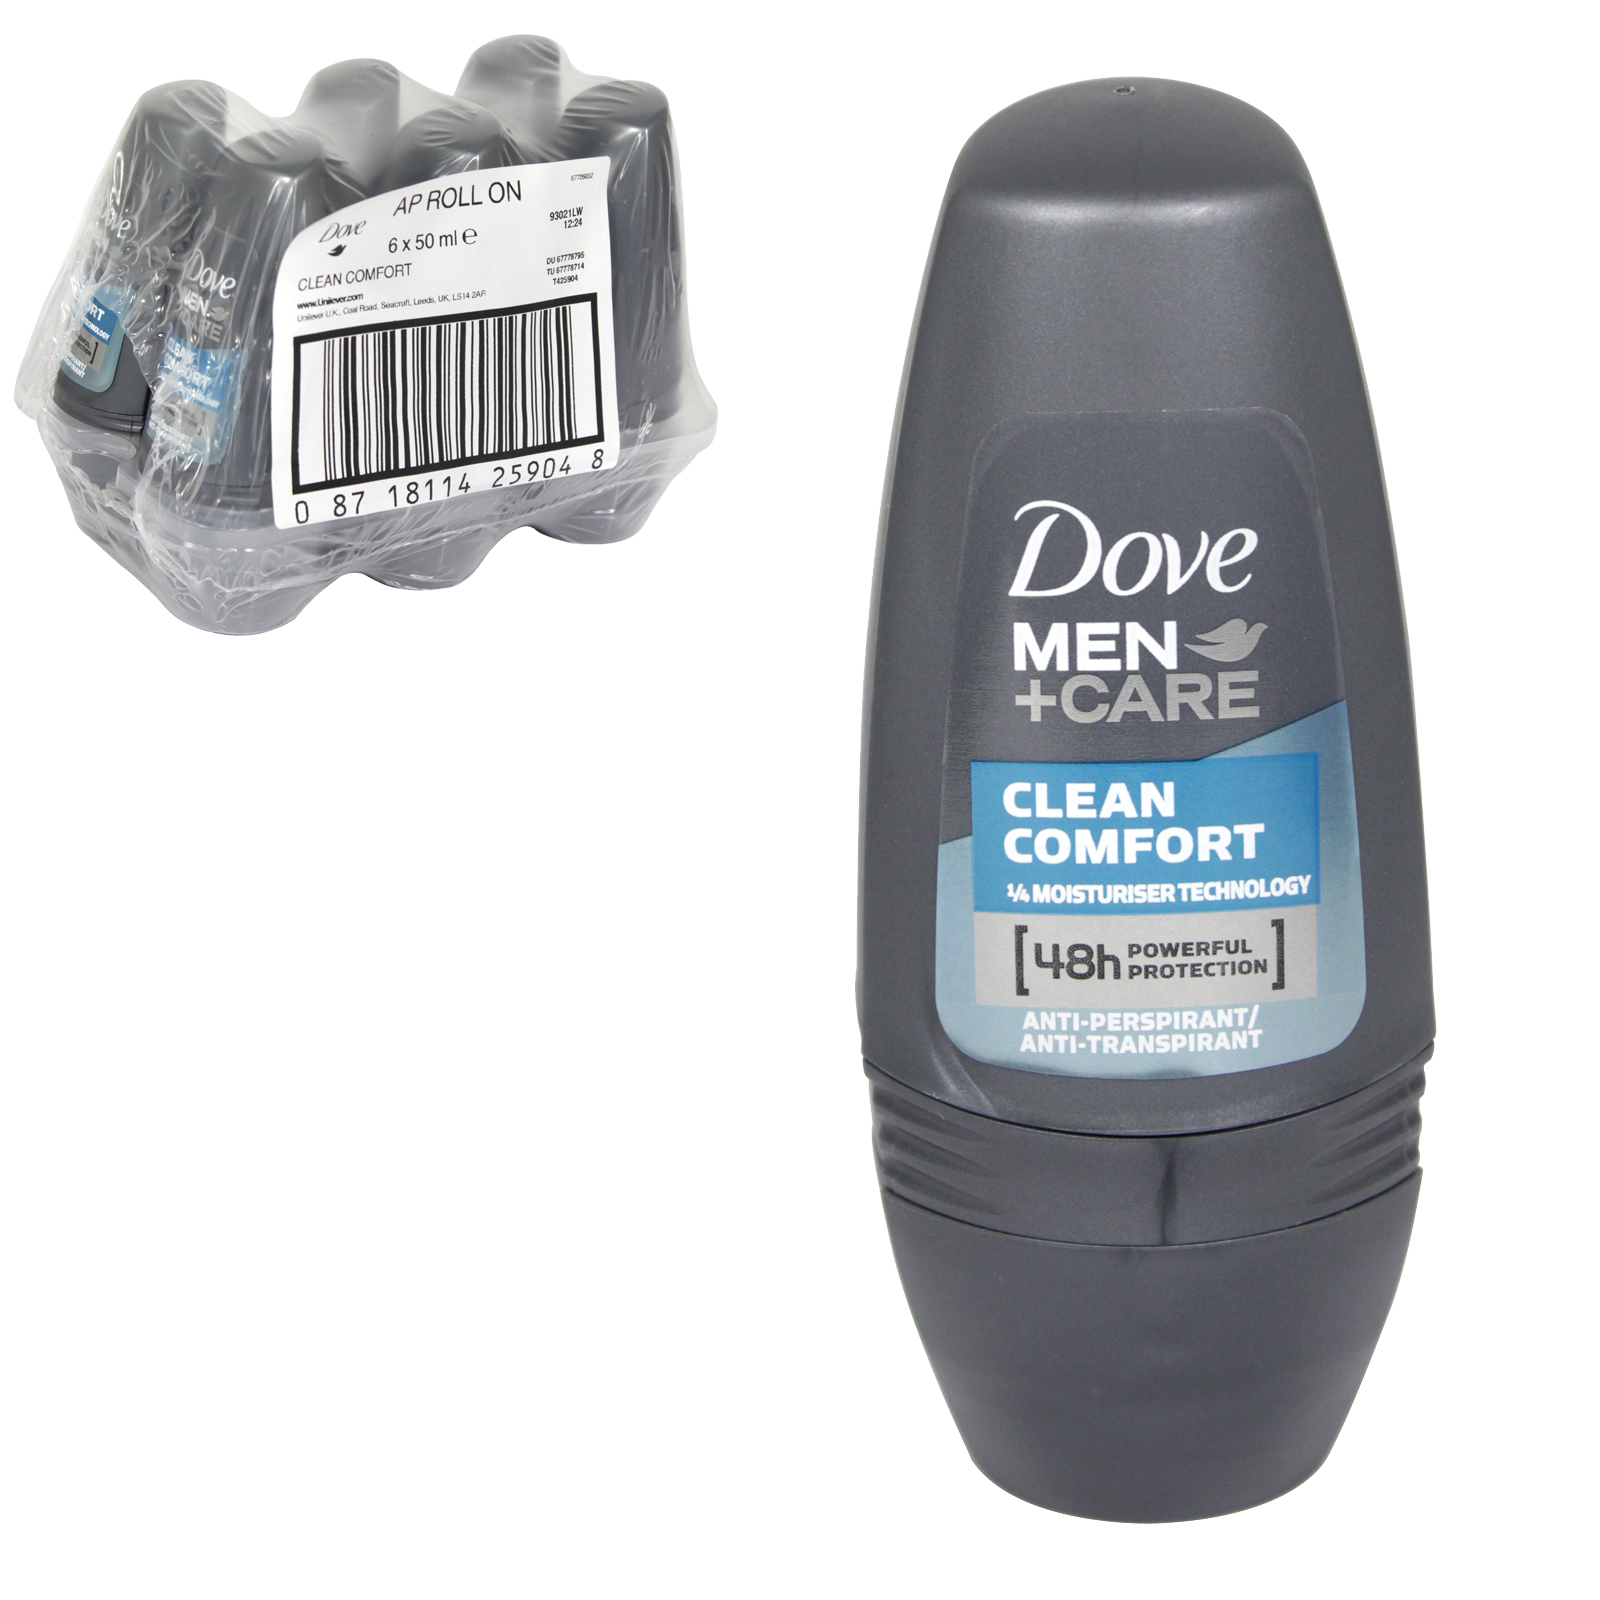 DOVE MEN+CARE ROLL ON 50ML CLEAN COMFORT X 6